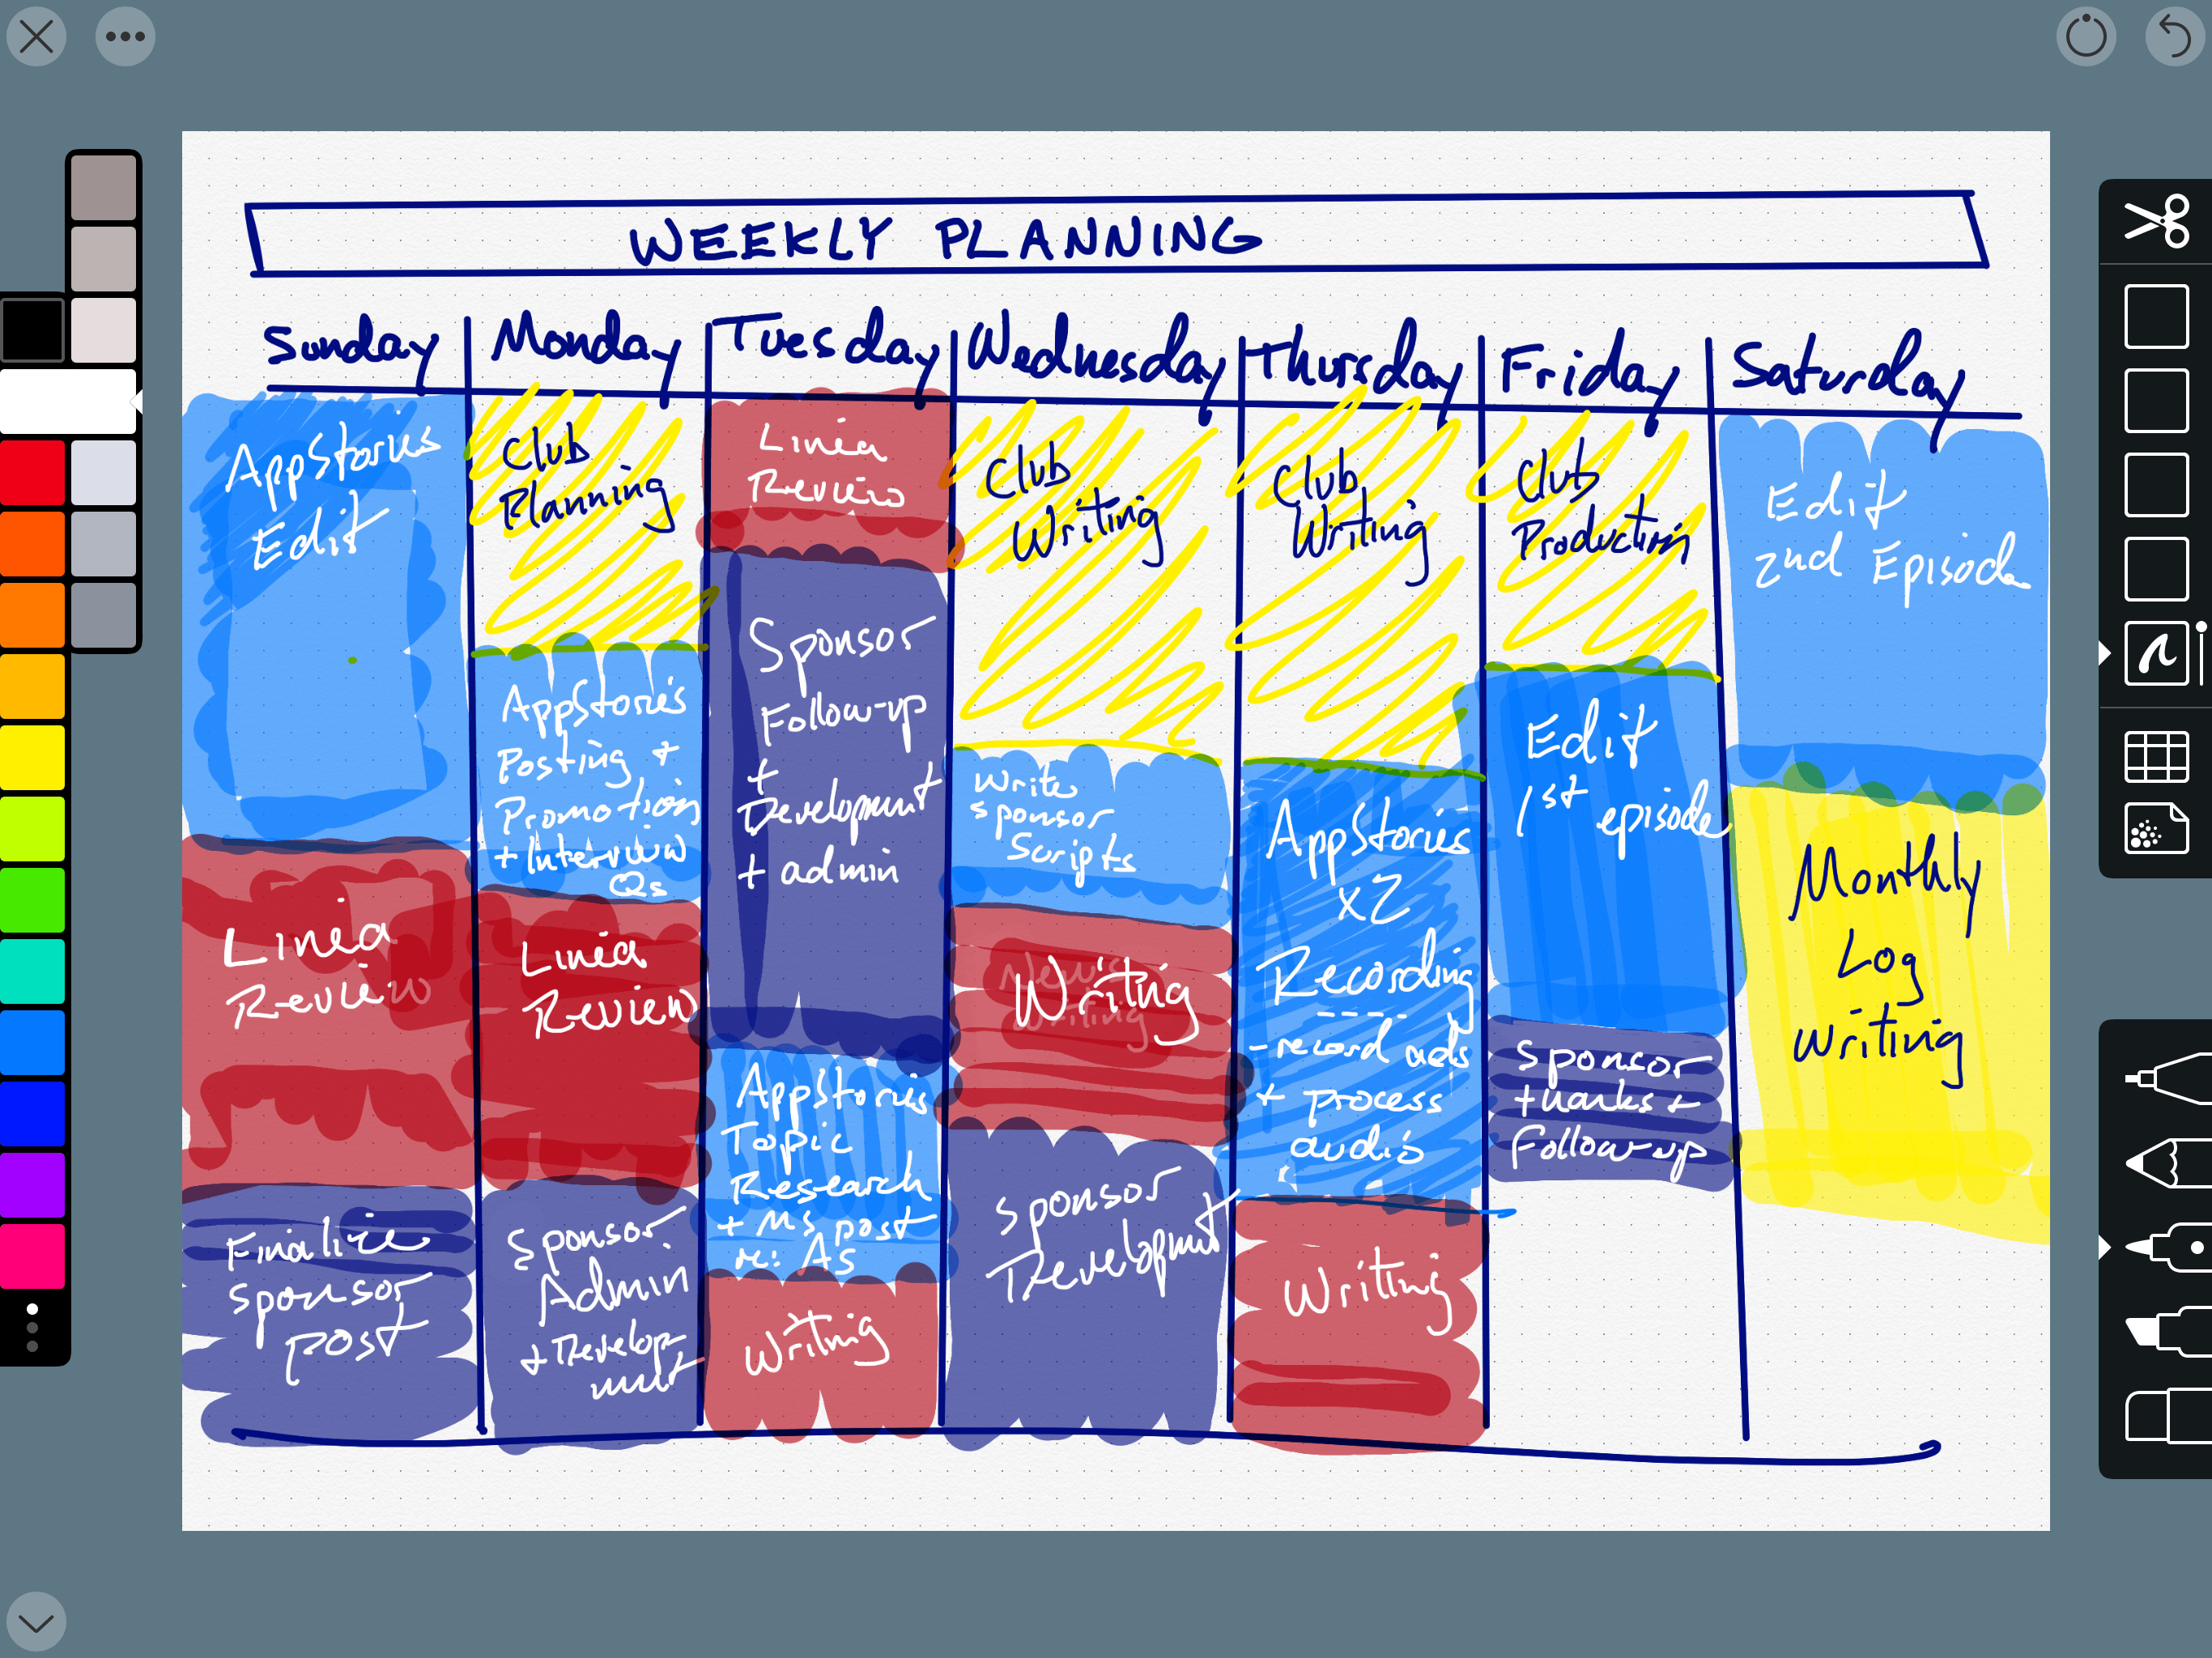 Linea Sketch is a fantastic way to plan your week.